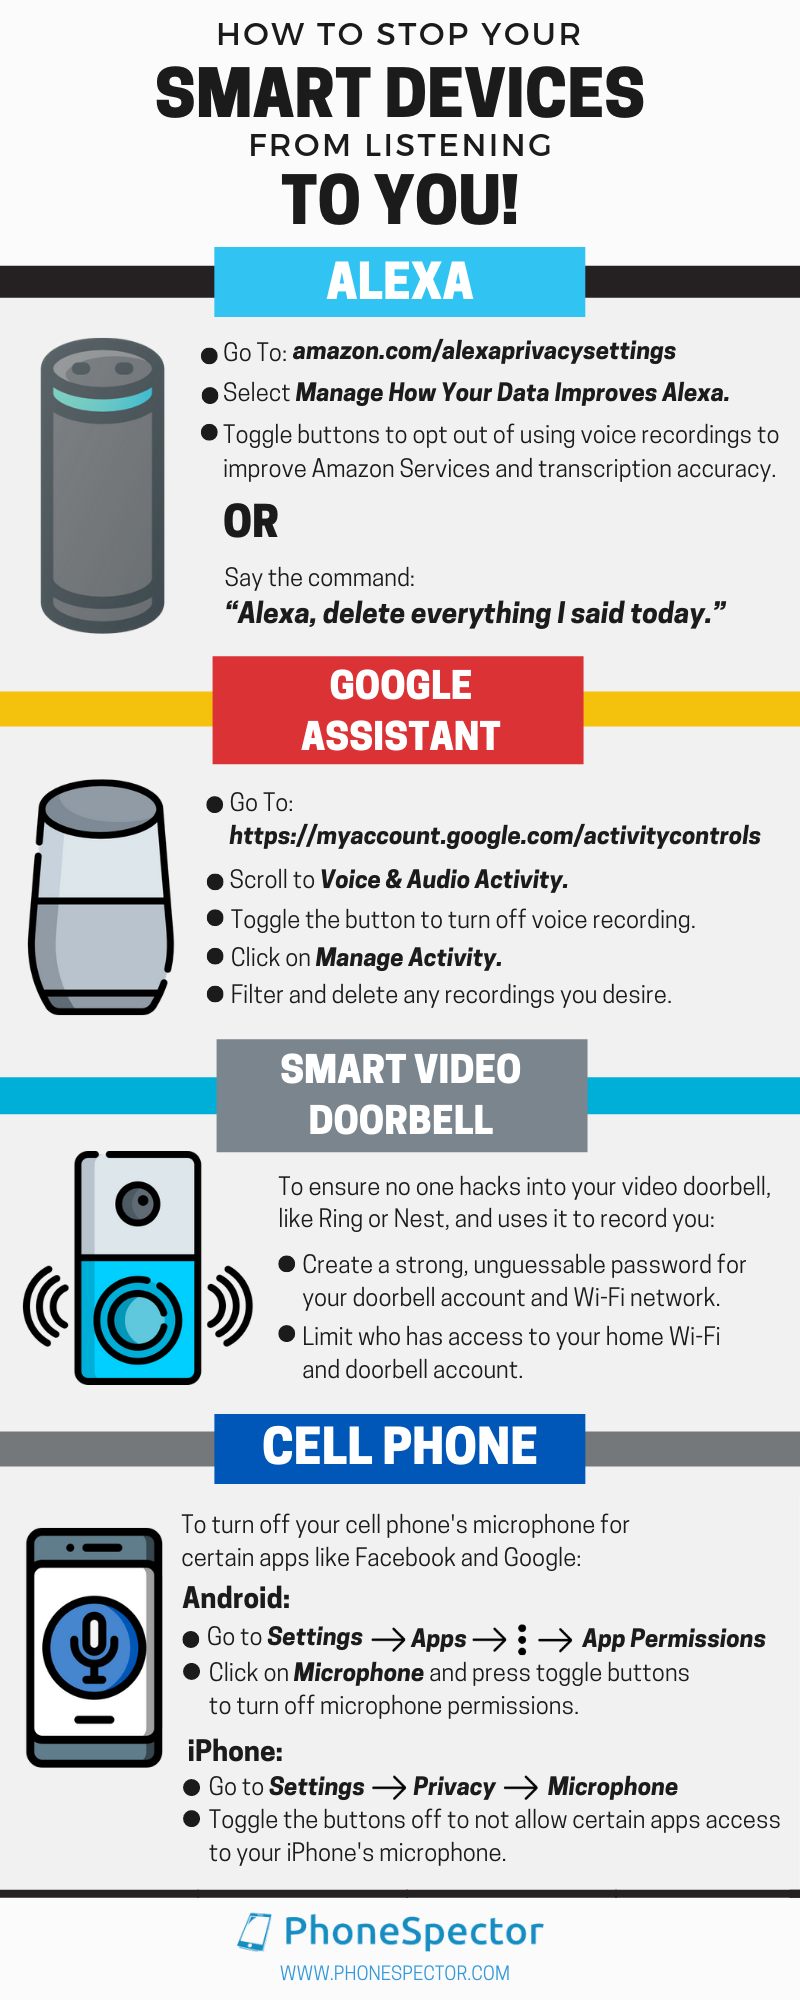 Are Your Smart Devices Spying On You? #infographic